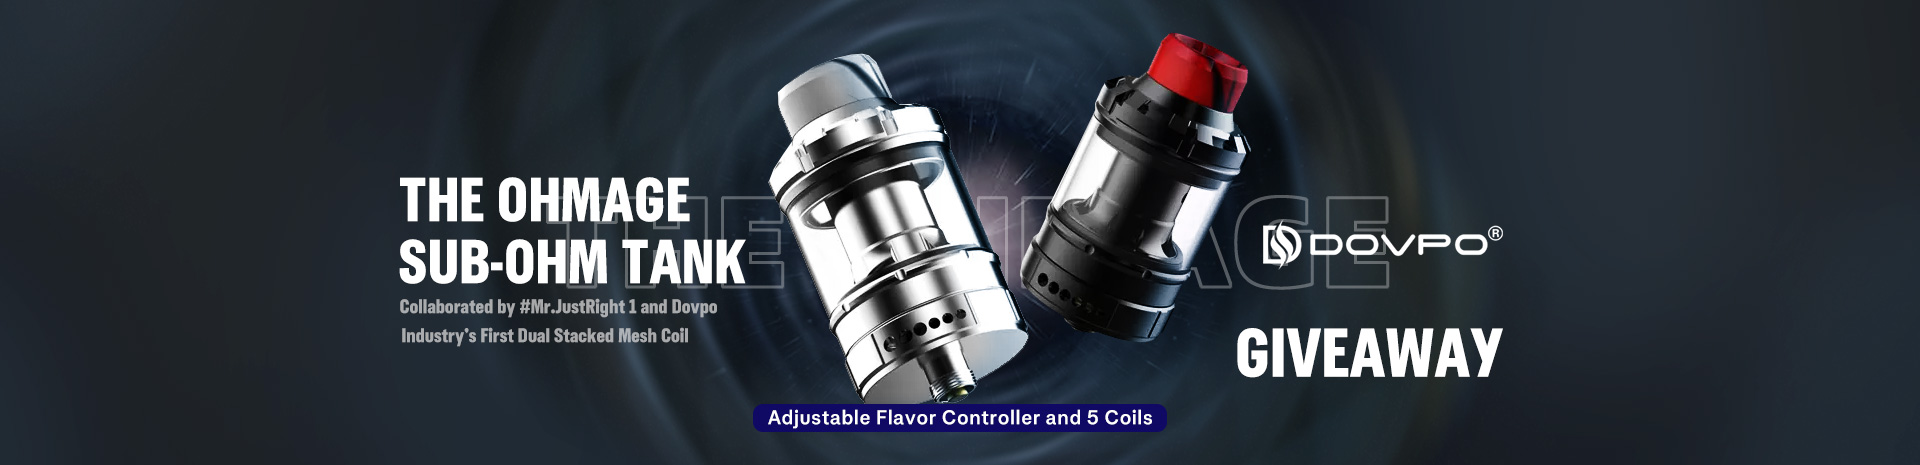 DOVPO the Ohmage Sub ohm Tank Giveaway Banner